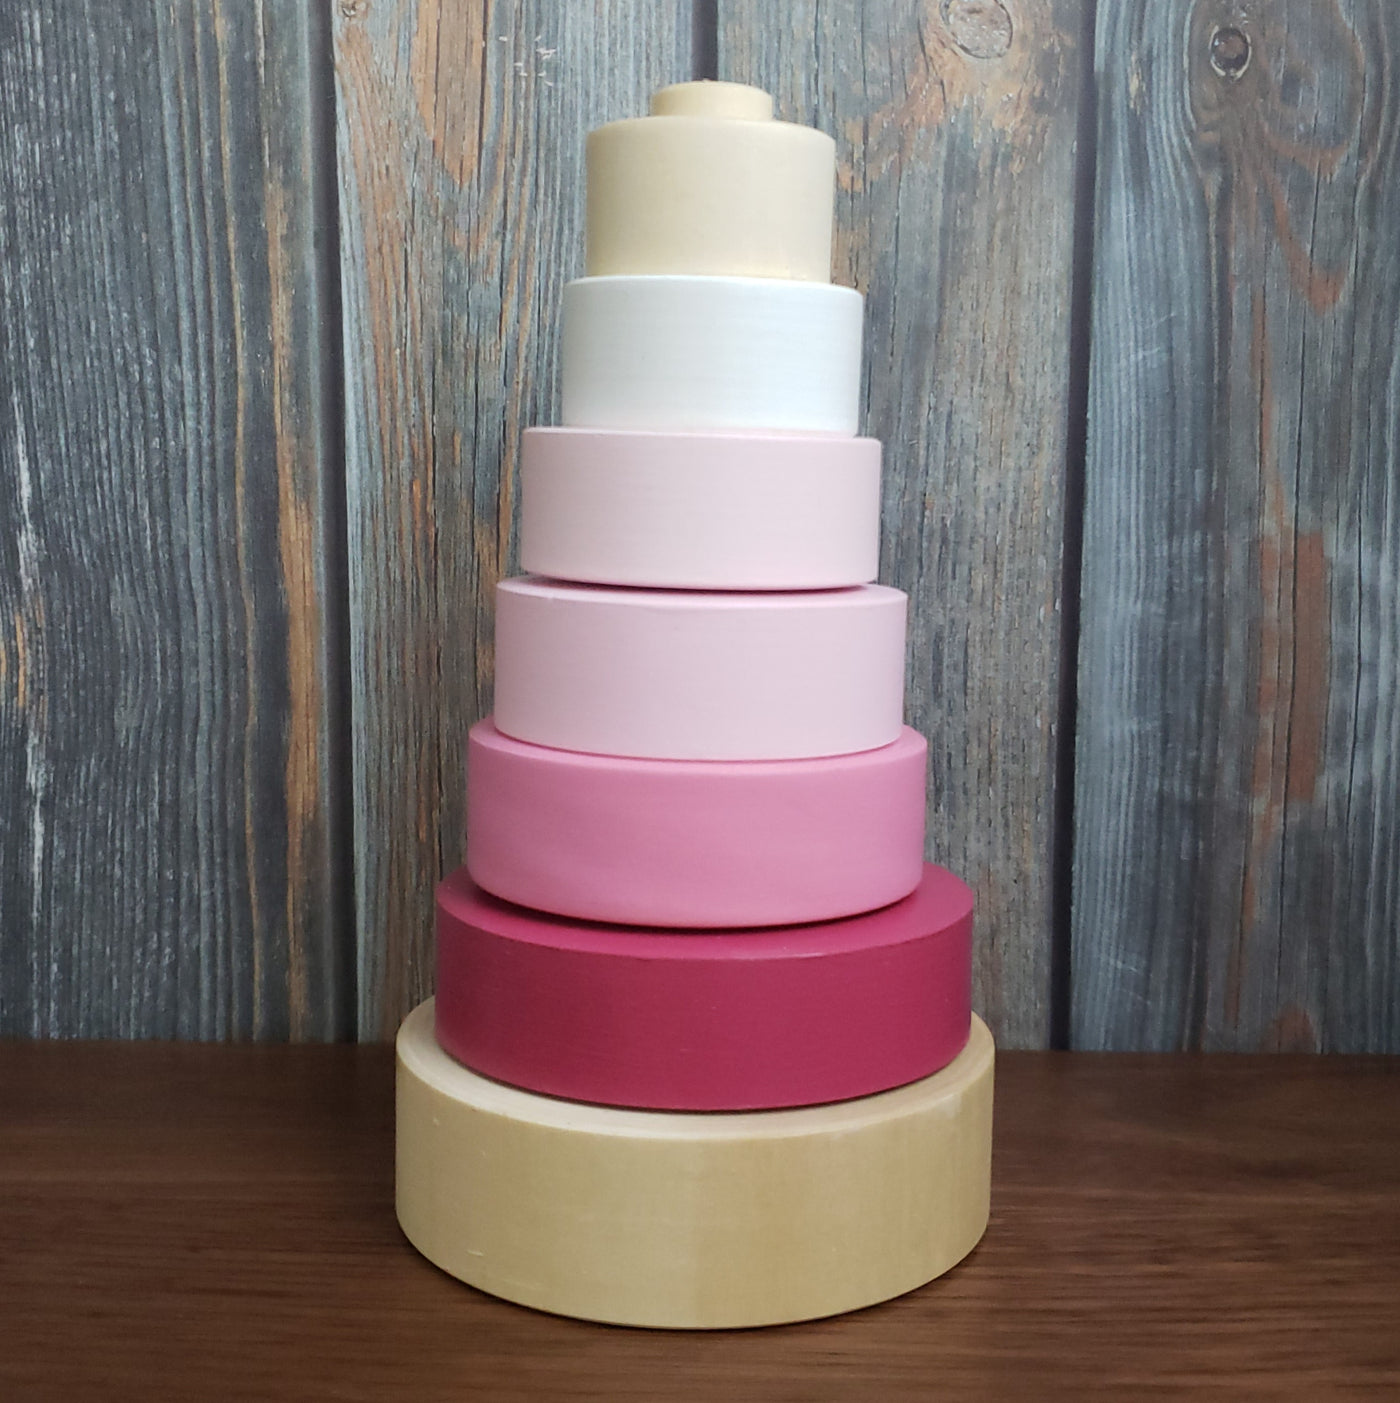 US stockist of Children of the Trees hand painted ring stacker wooden toy in pinks.